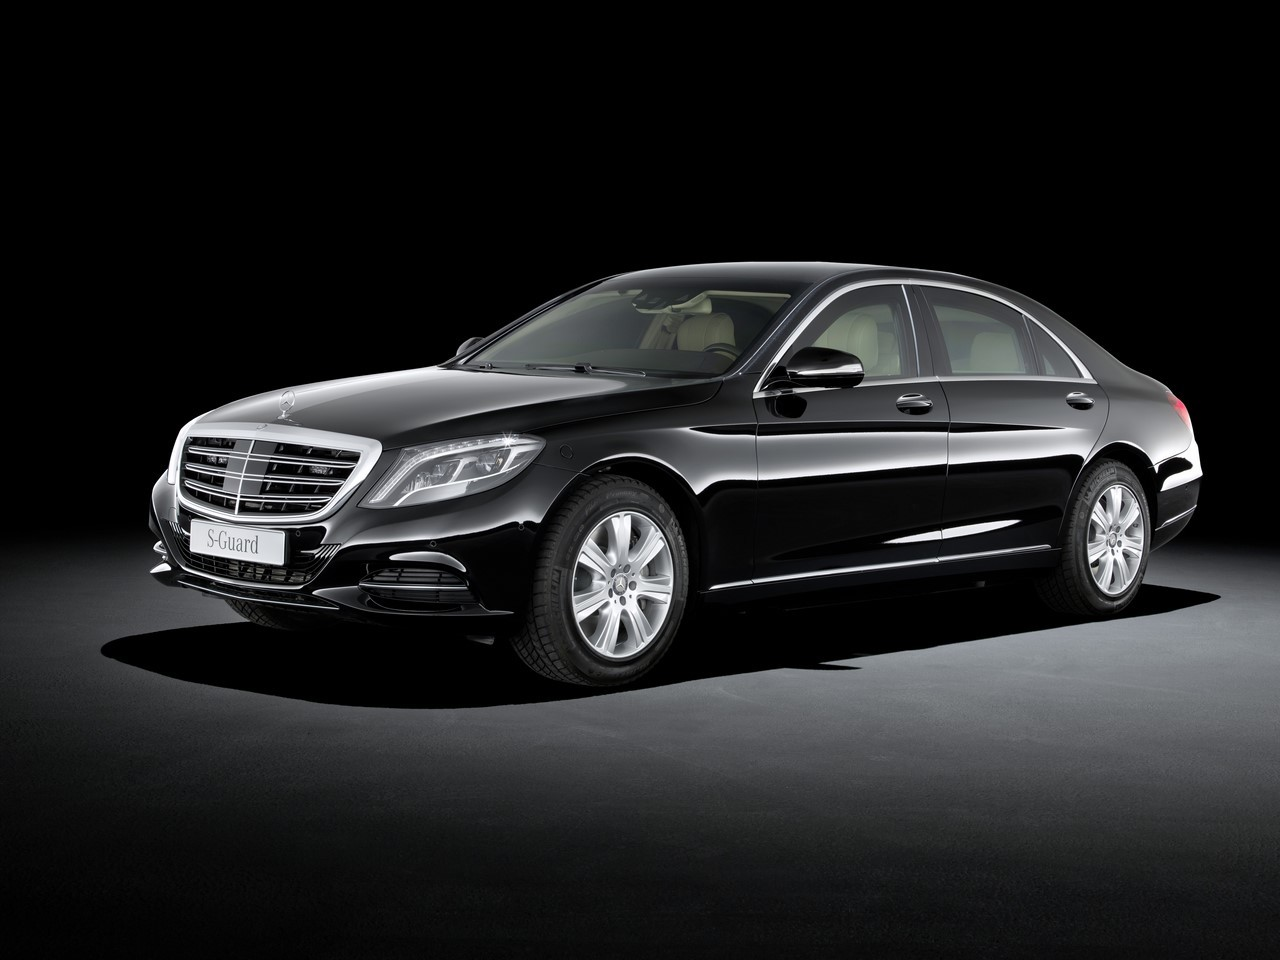 Mercedes S 600 Guard : blindage maximal